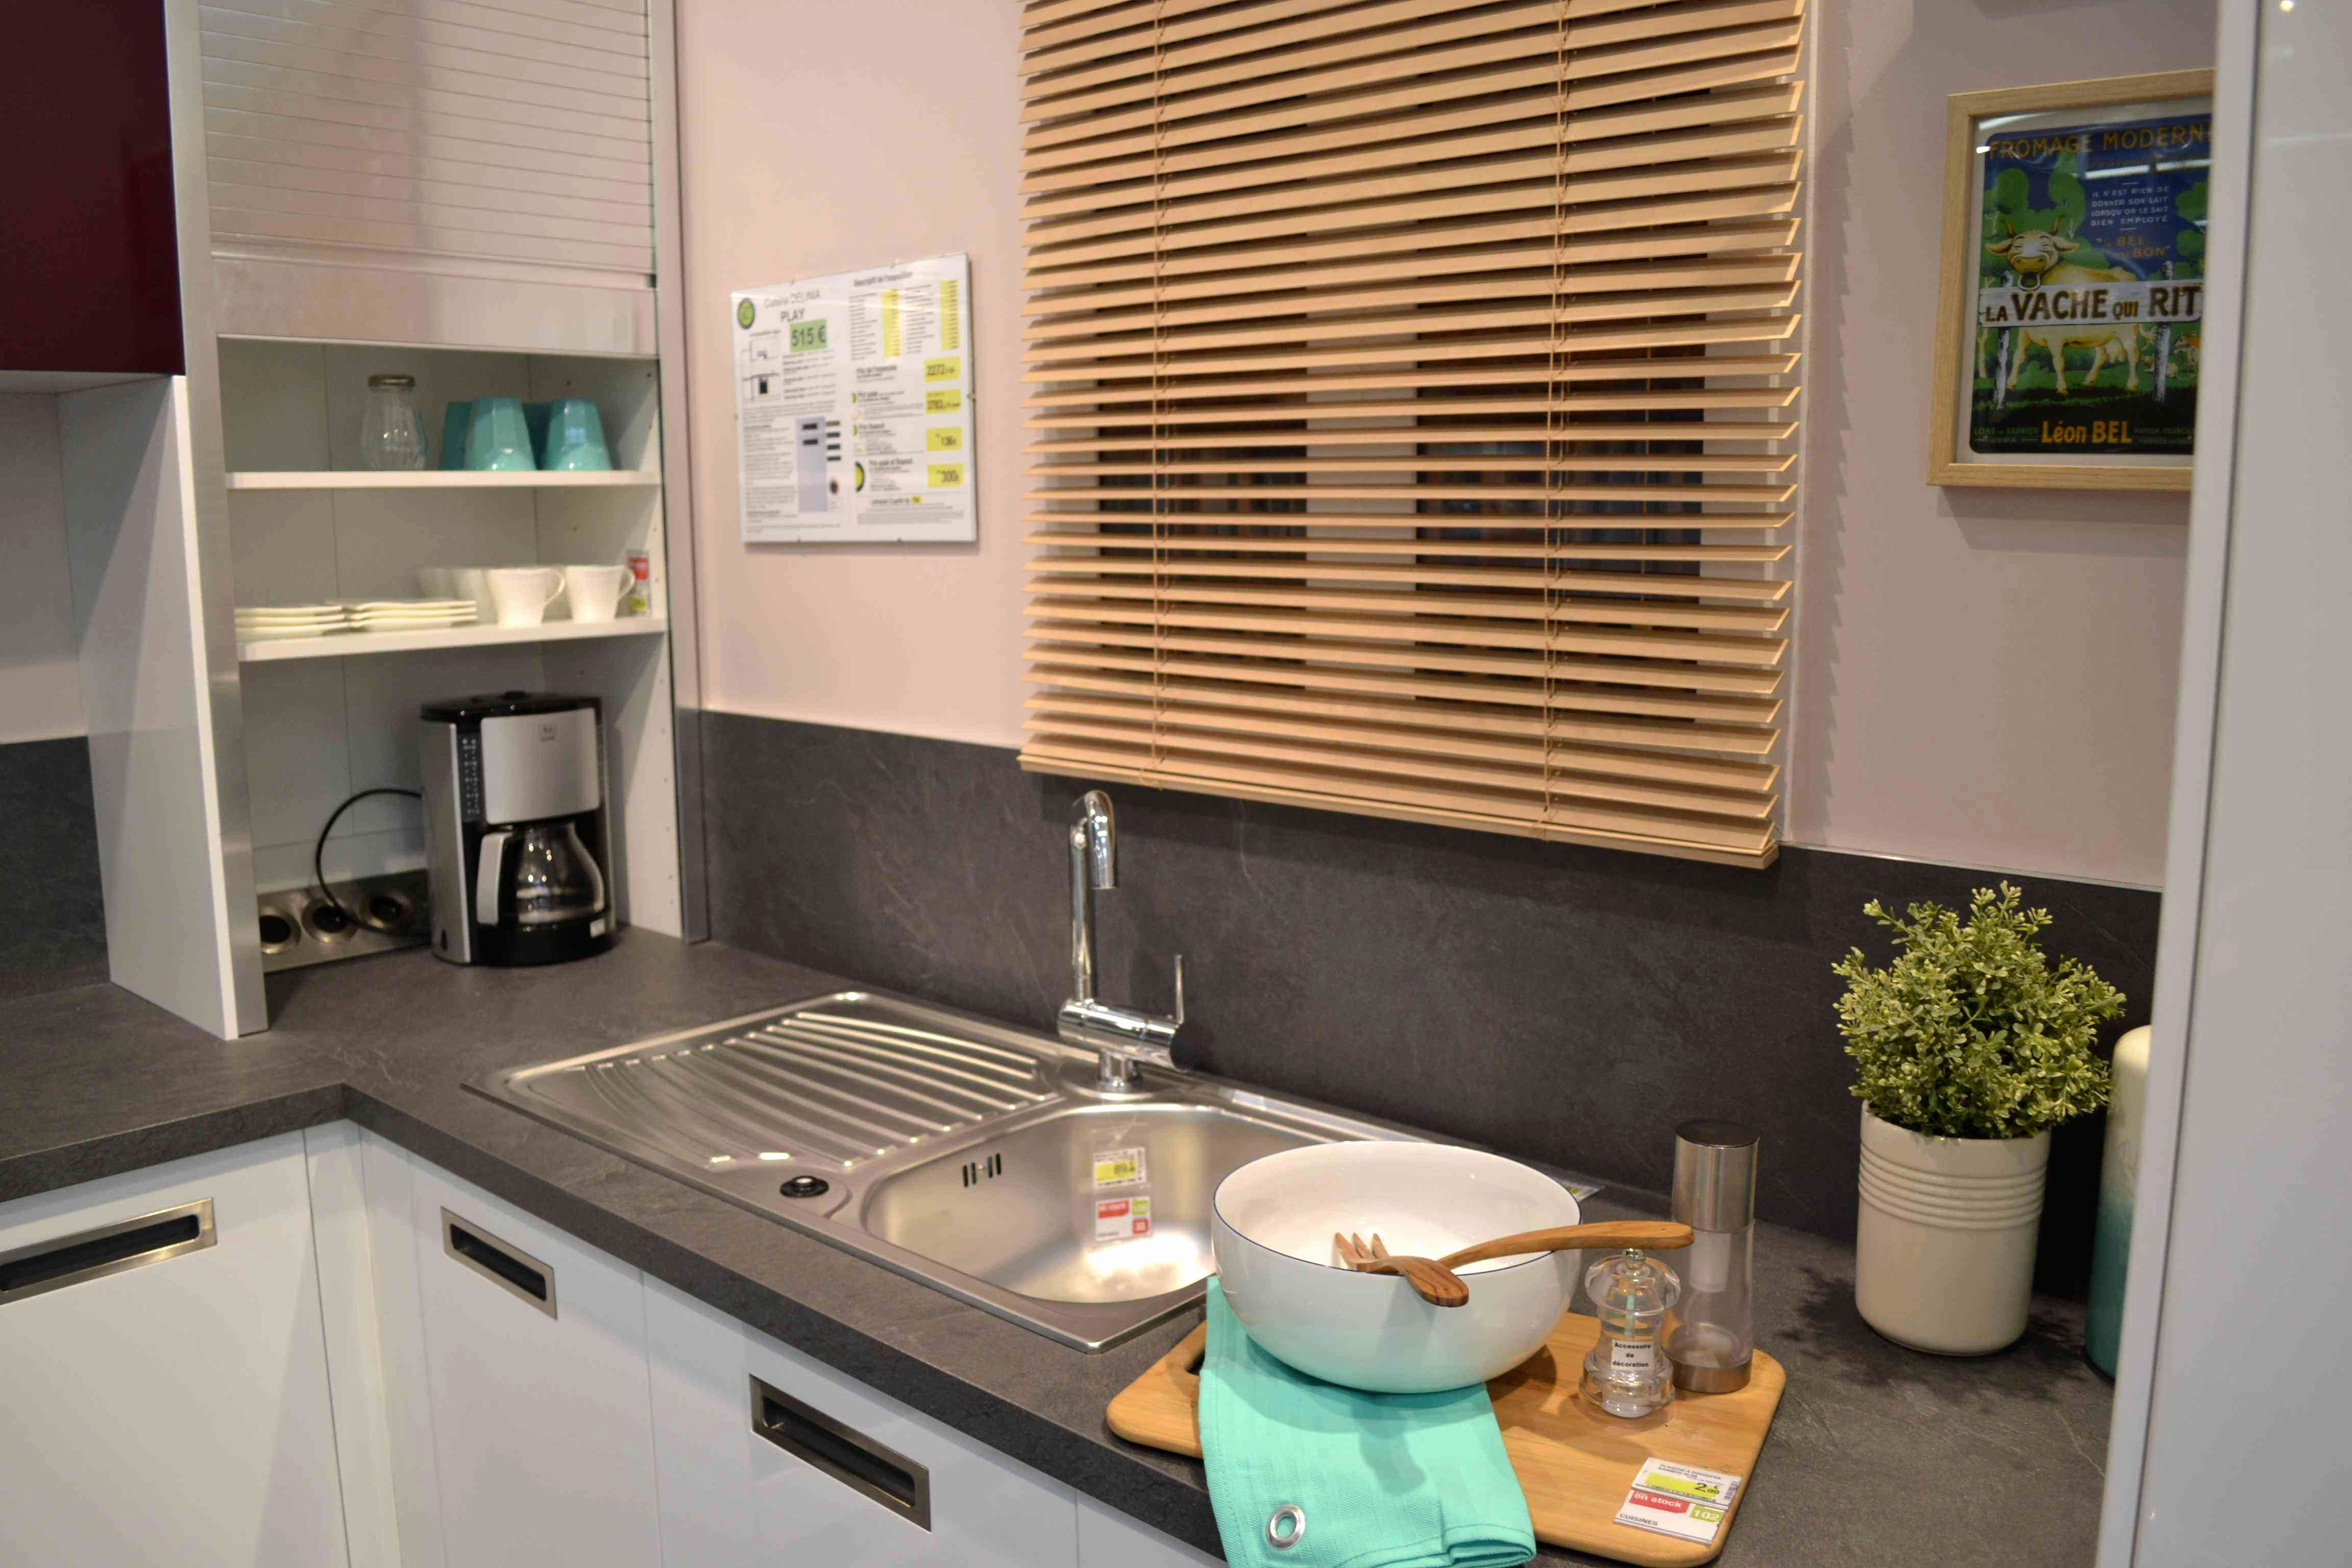 Plan Travail Cuisine Leroy Merlin Beau Images Cuisine Chez Leroy Merlin Frais Cuisines but Beau H Sink Everything